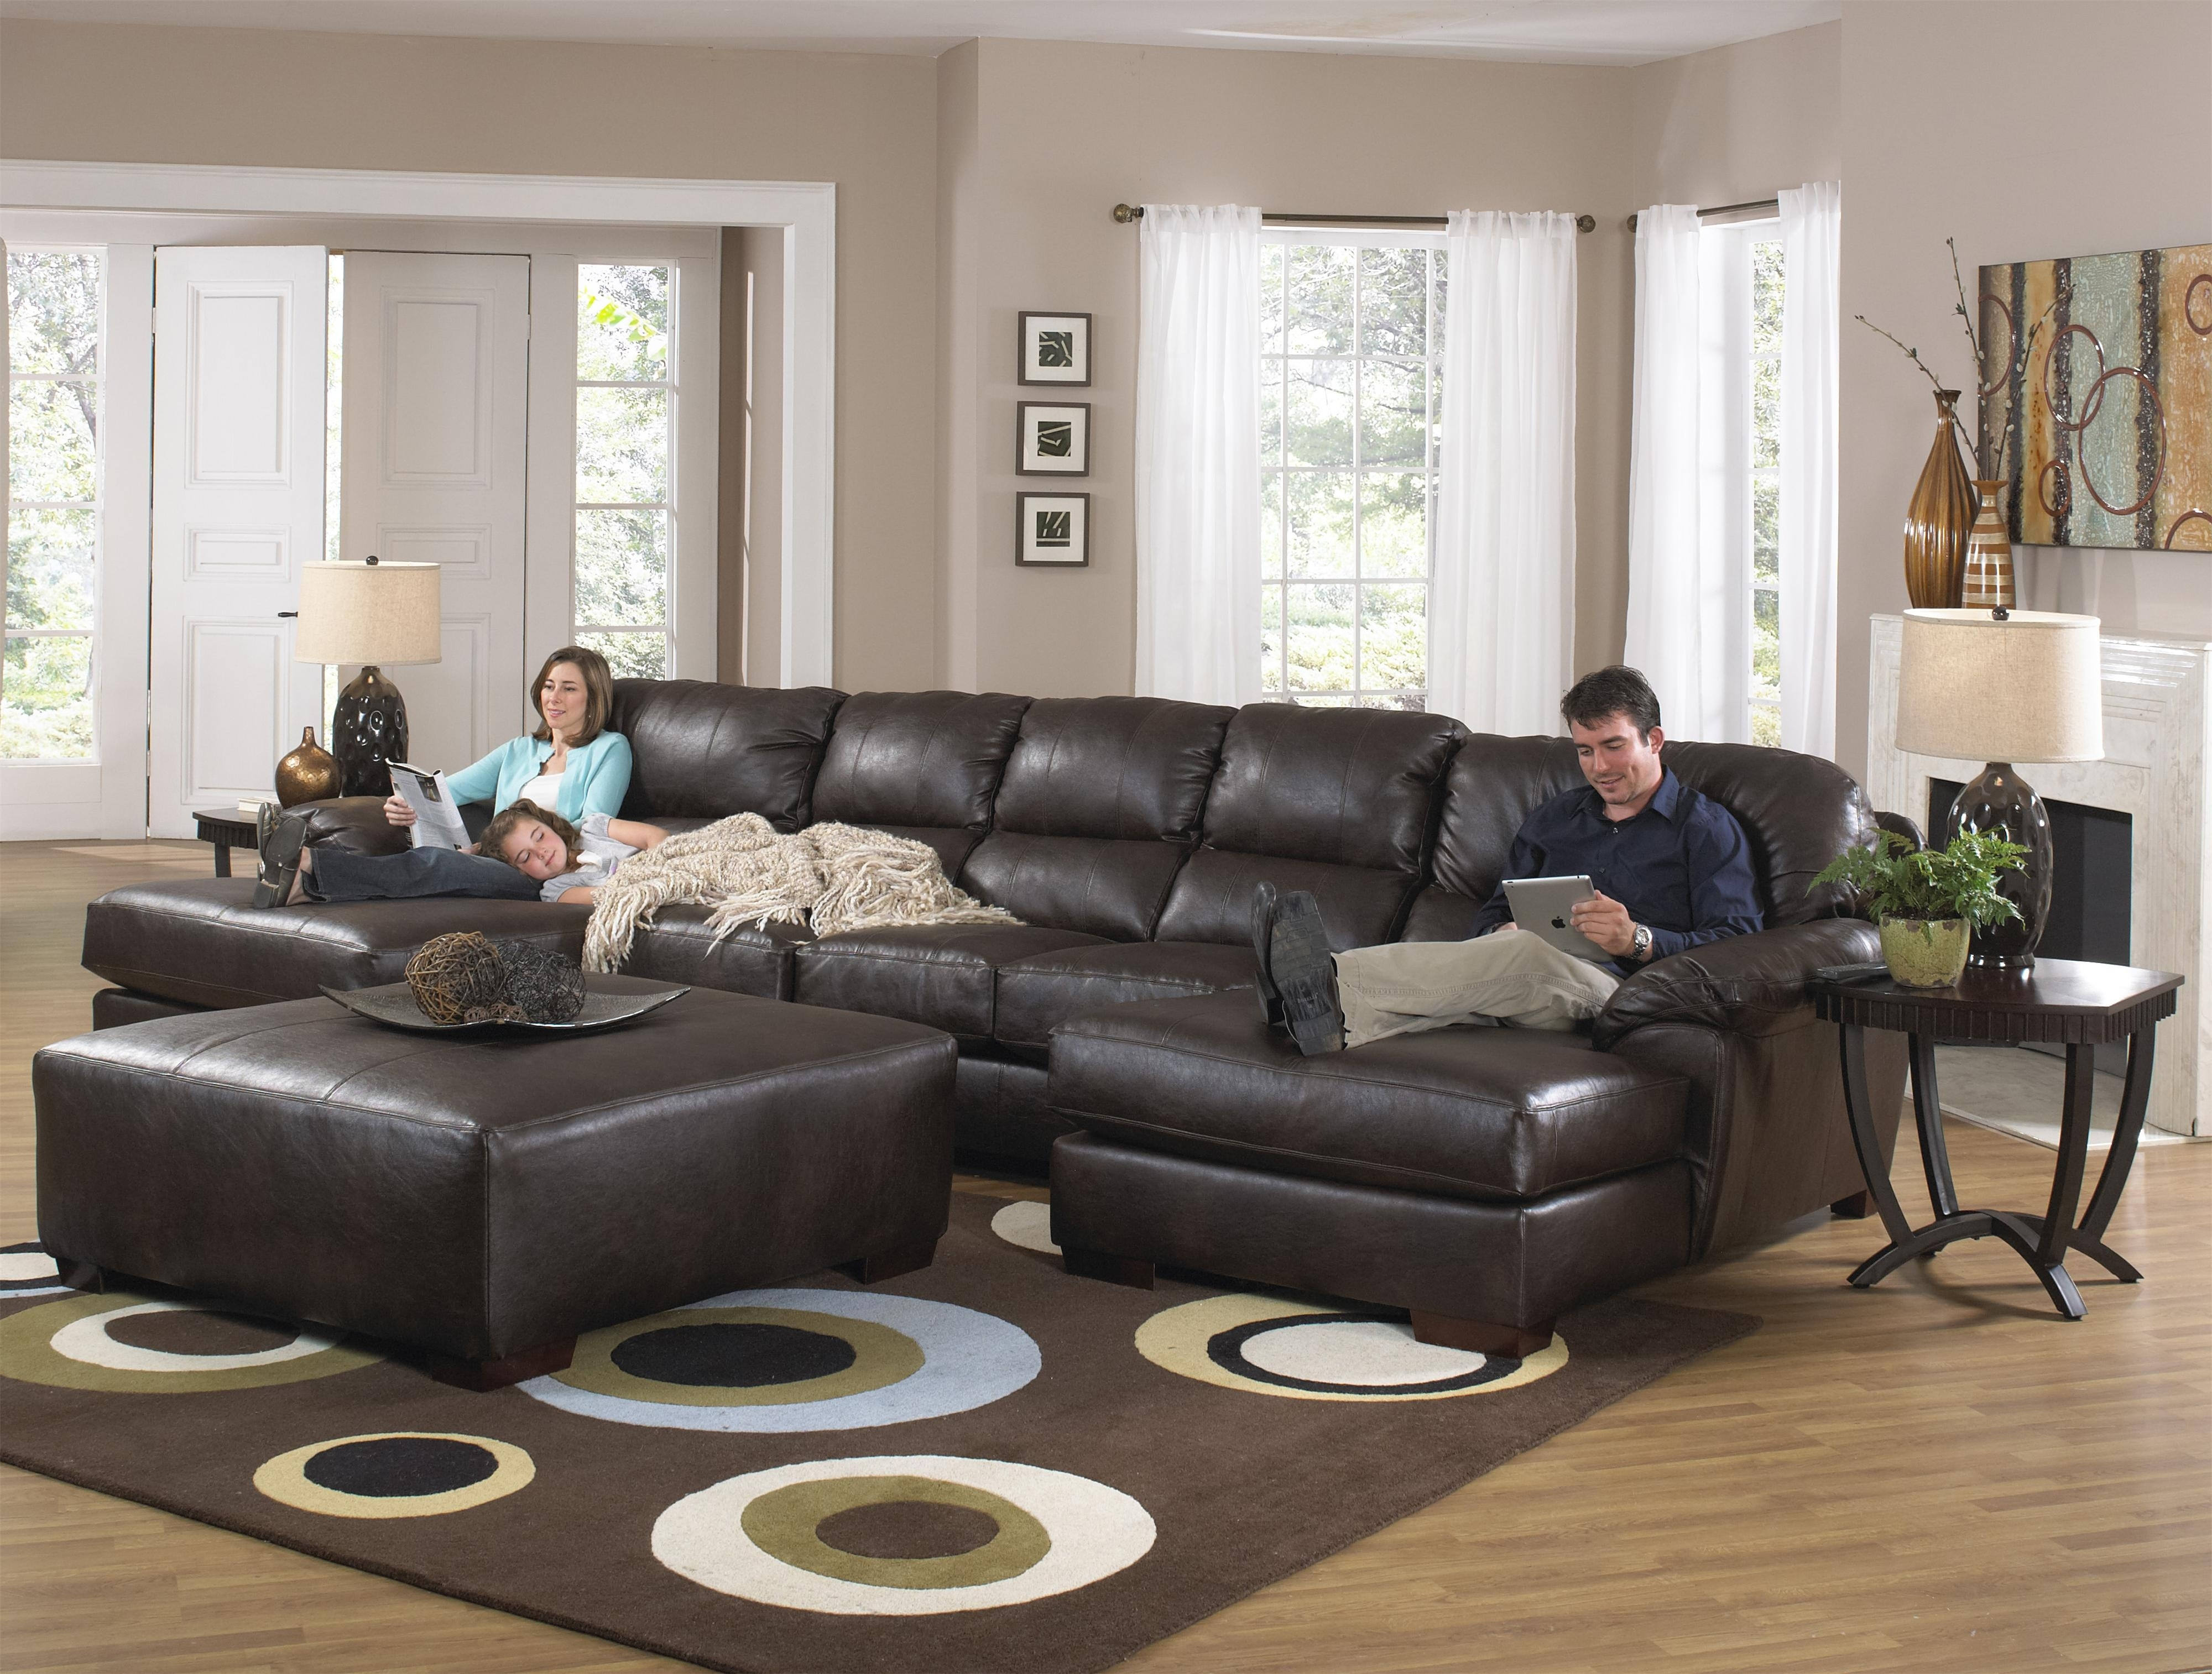 Two Chaise Sectional Sofa With Five Total Seatsjackson Furniture Intended For Long Chaise Sofas (View 3 of 10)